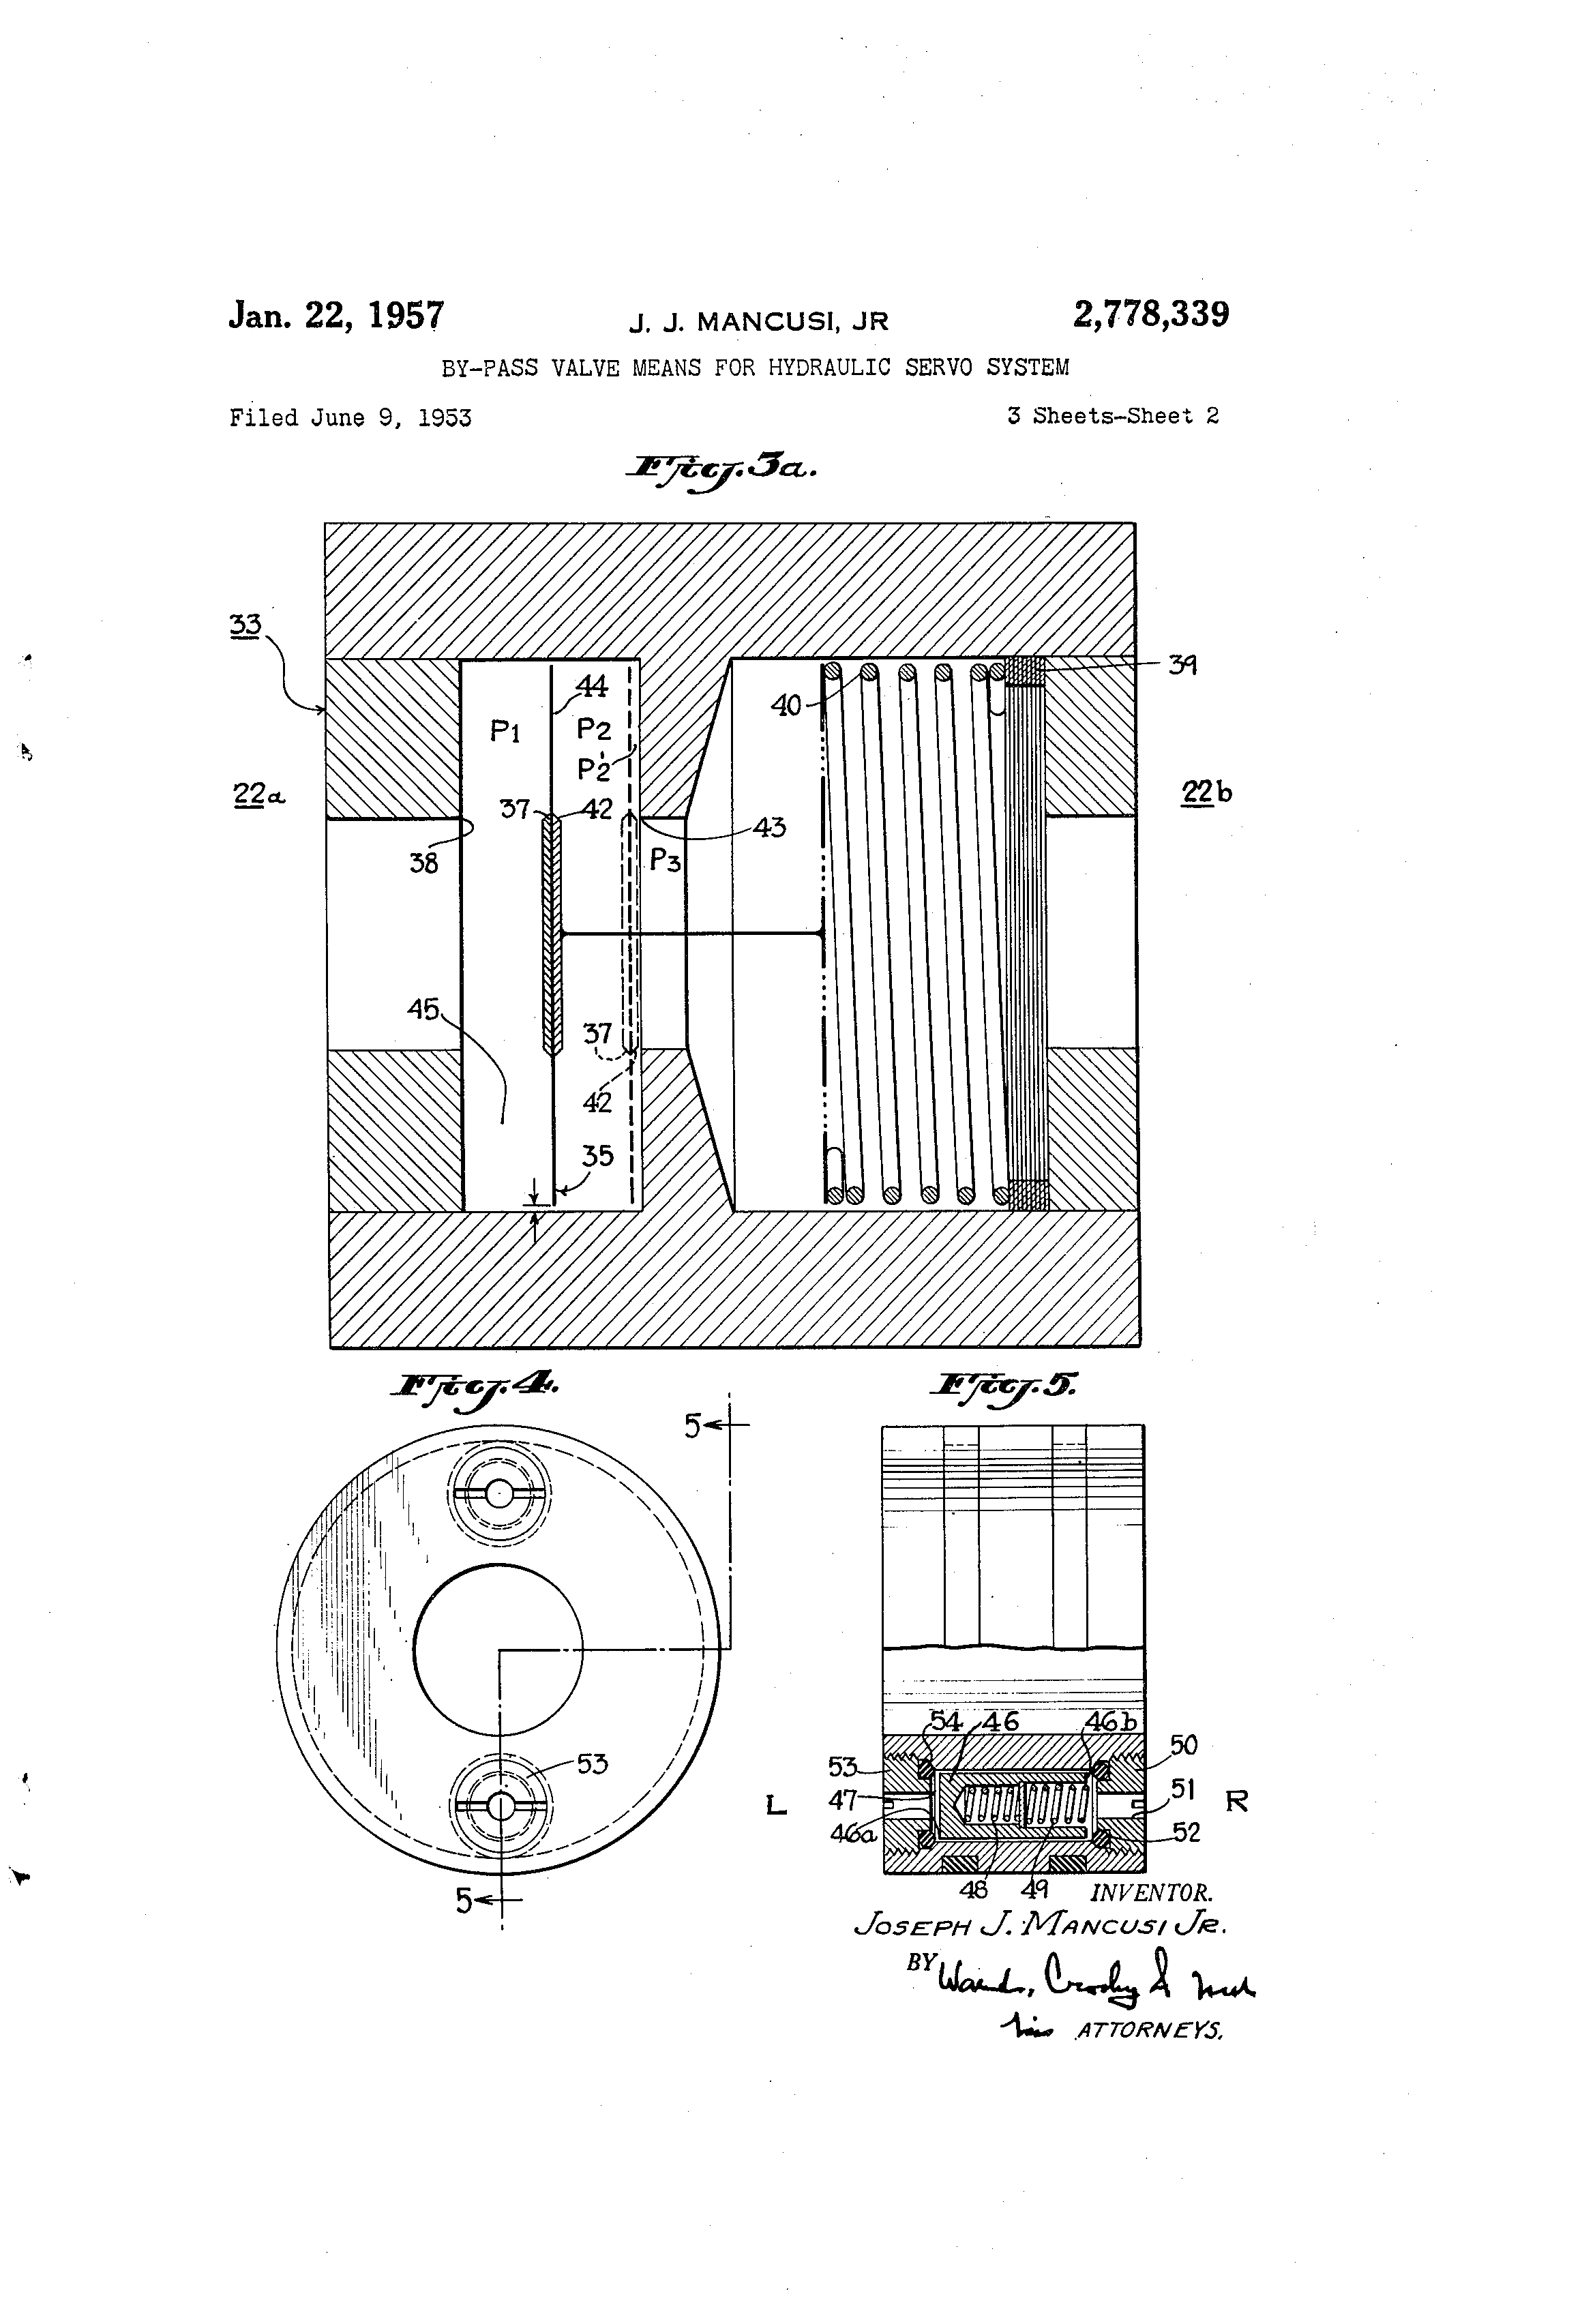 Patent Us2778339 By Pass Valve Means For Hydraulic Servo System 4 7l Engine Diagram Drawing